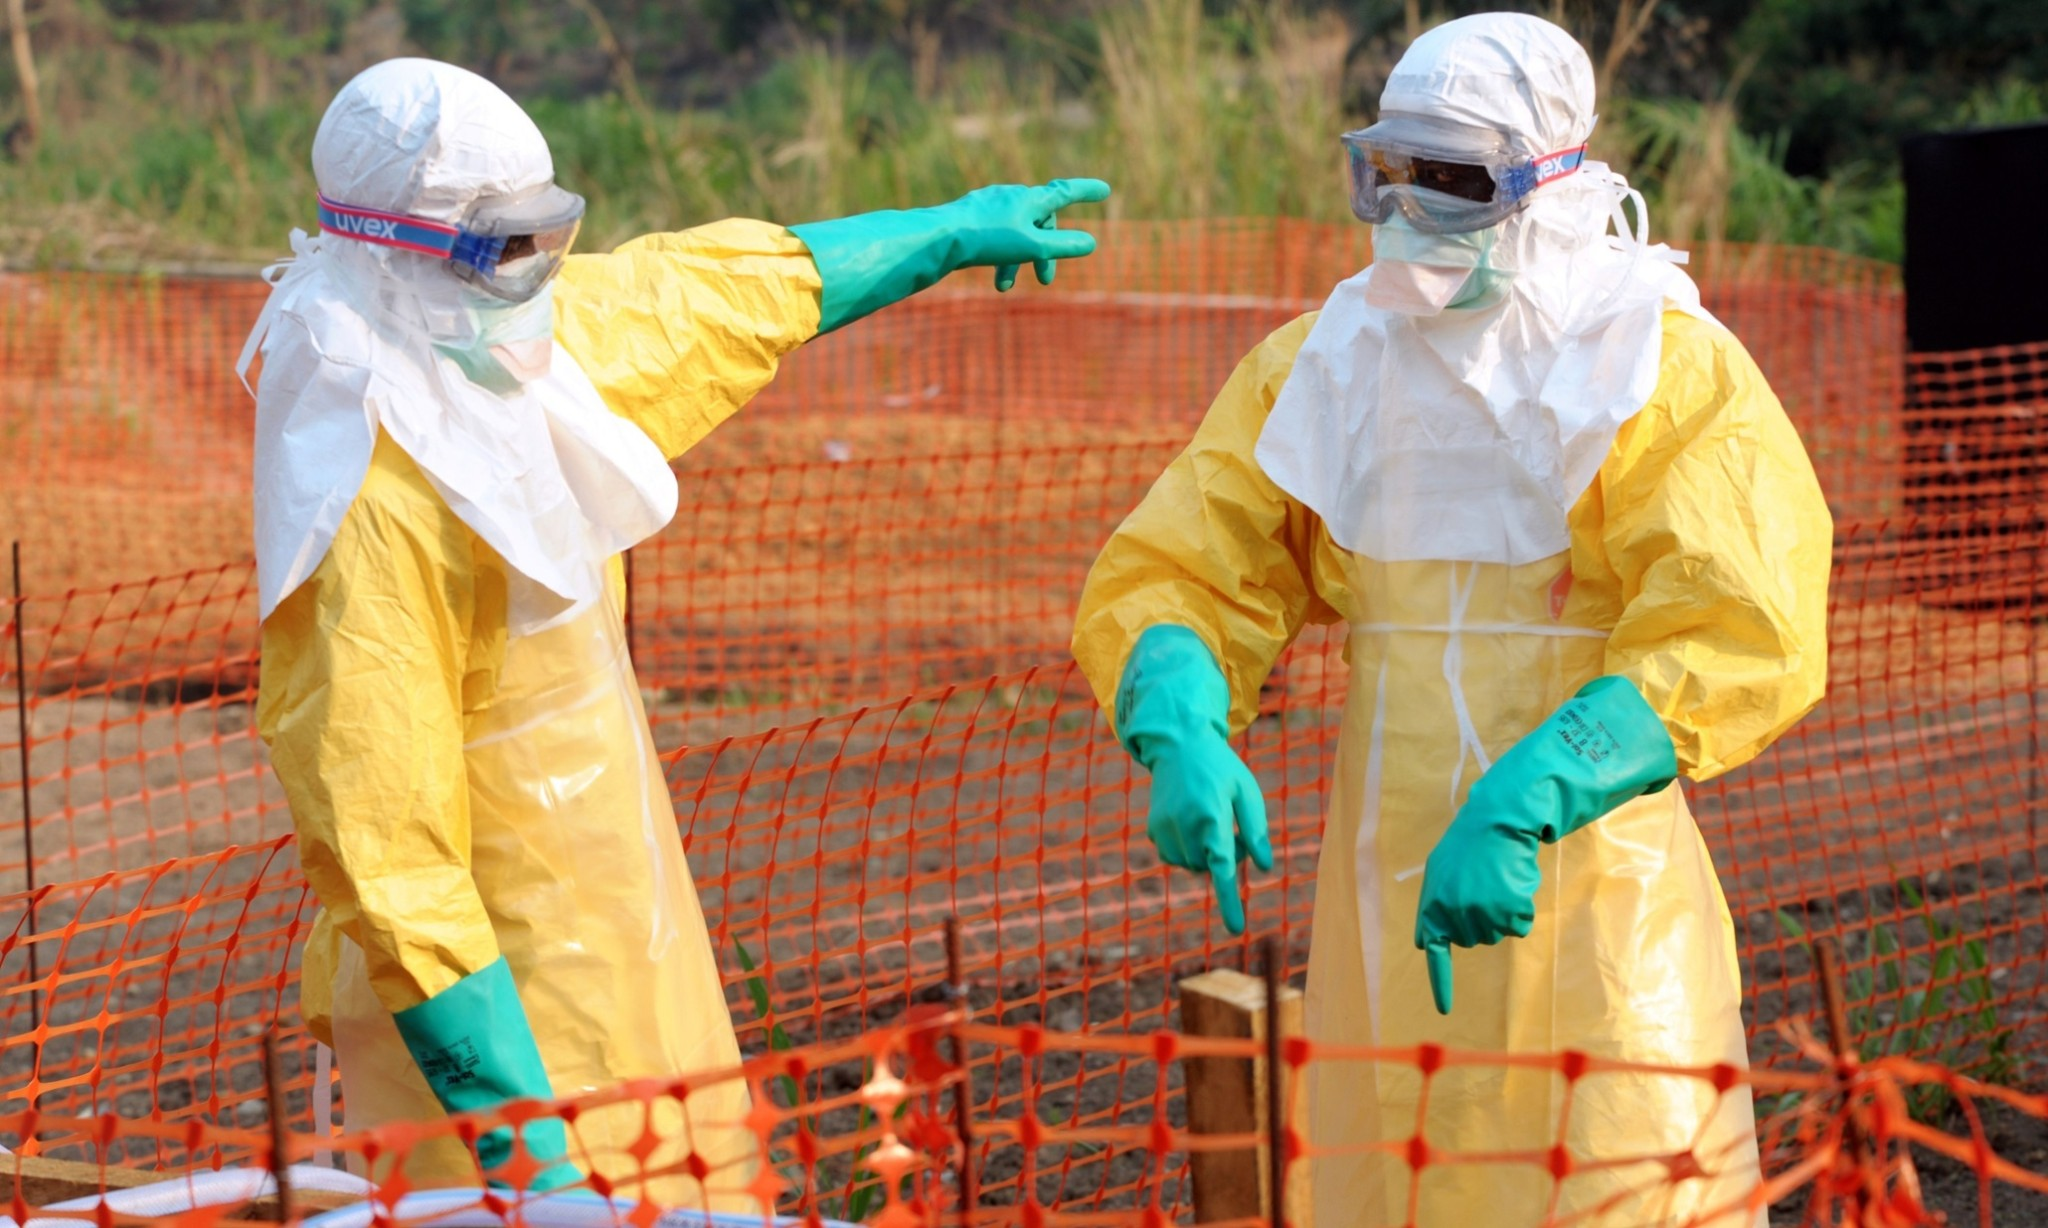 Guinea's Ebola outbreak: what is the virus and what's being done?